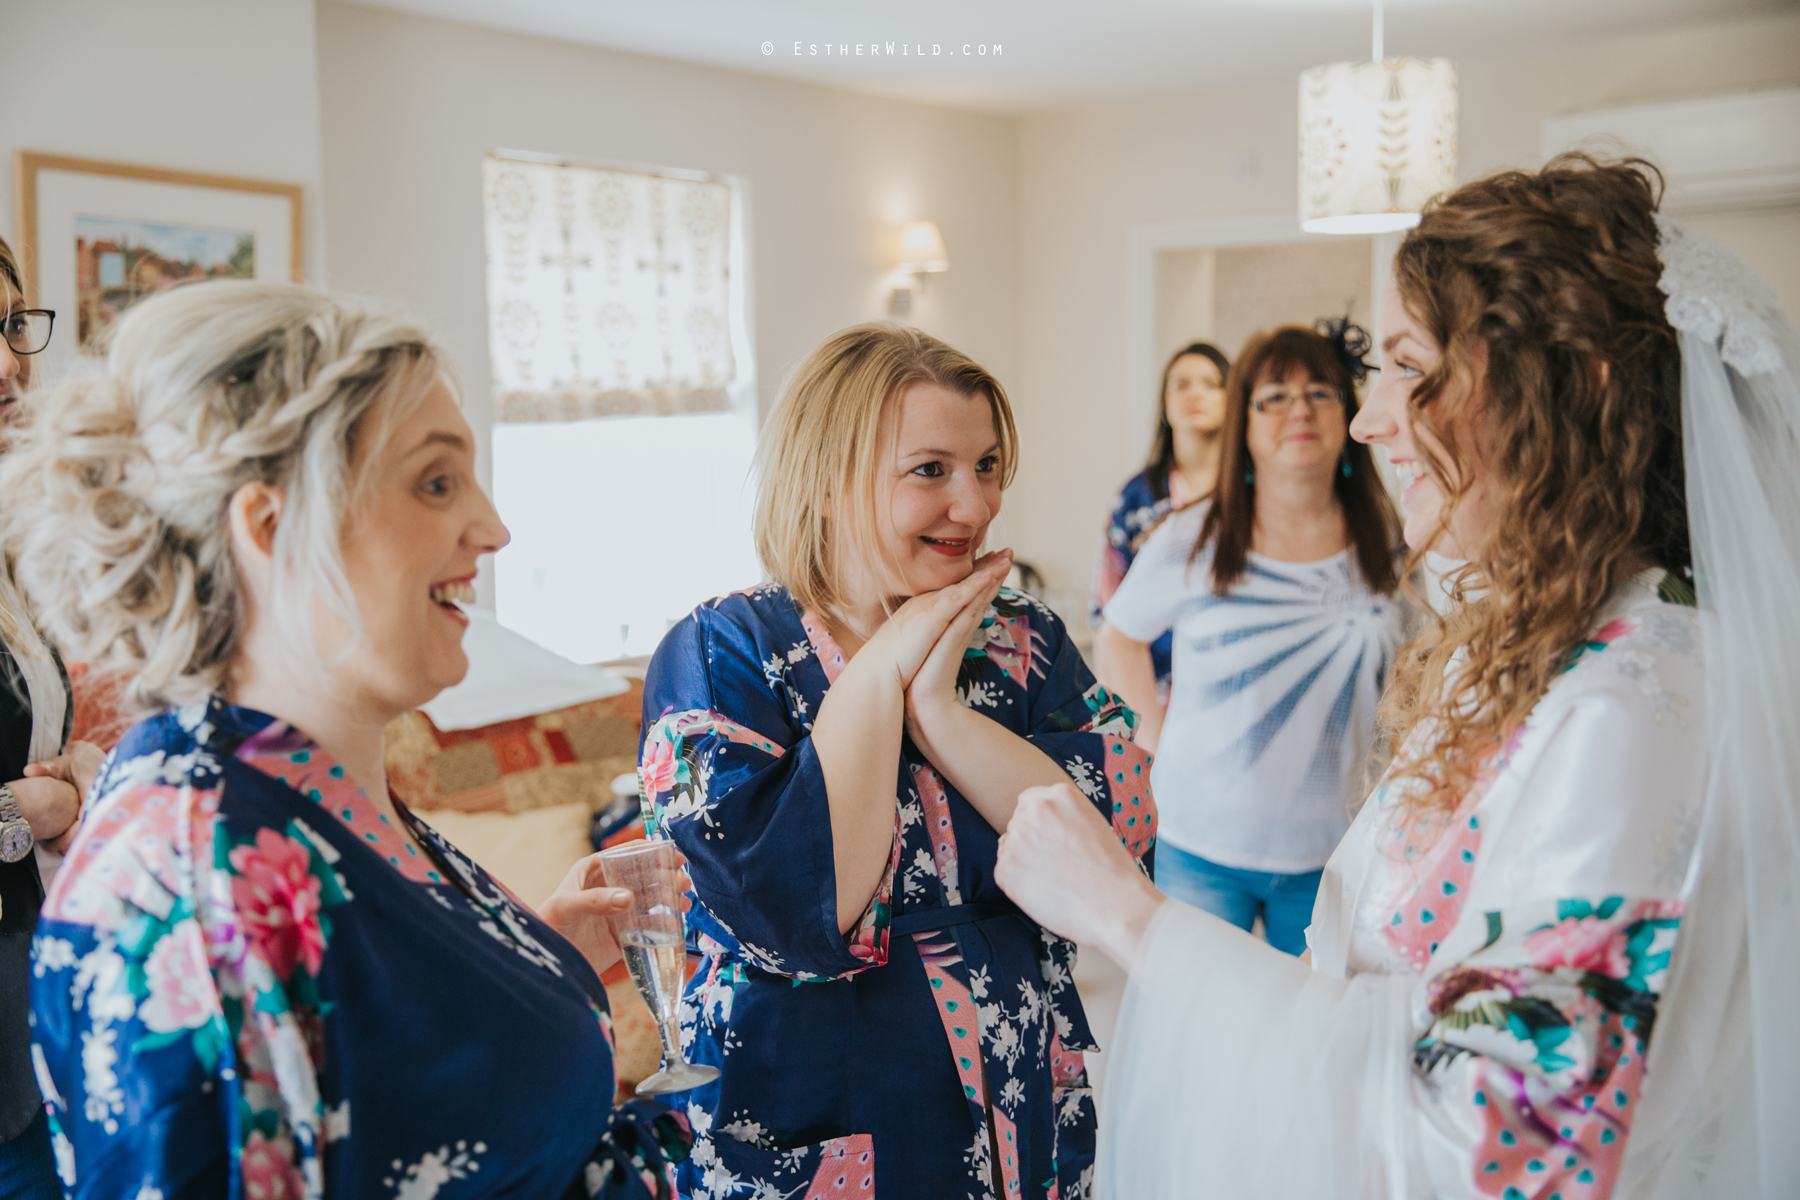 The_BoatHouse_Wedding_Venue_Ormesby_Norfolk_Broads_Boat_Wedding_Photography_Esther_Wild_Photographer_IMG_0391.jpg